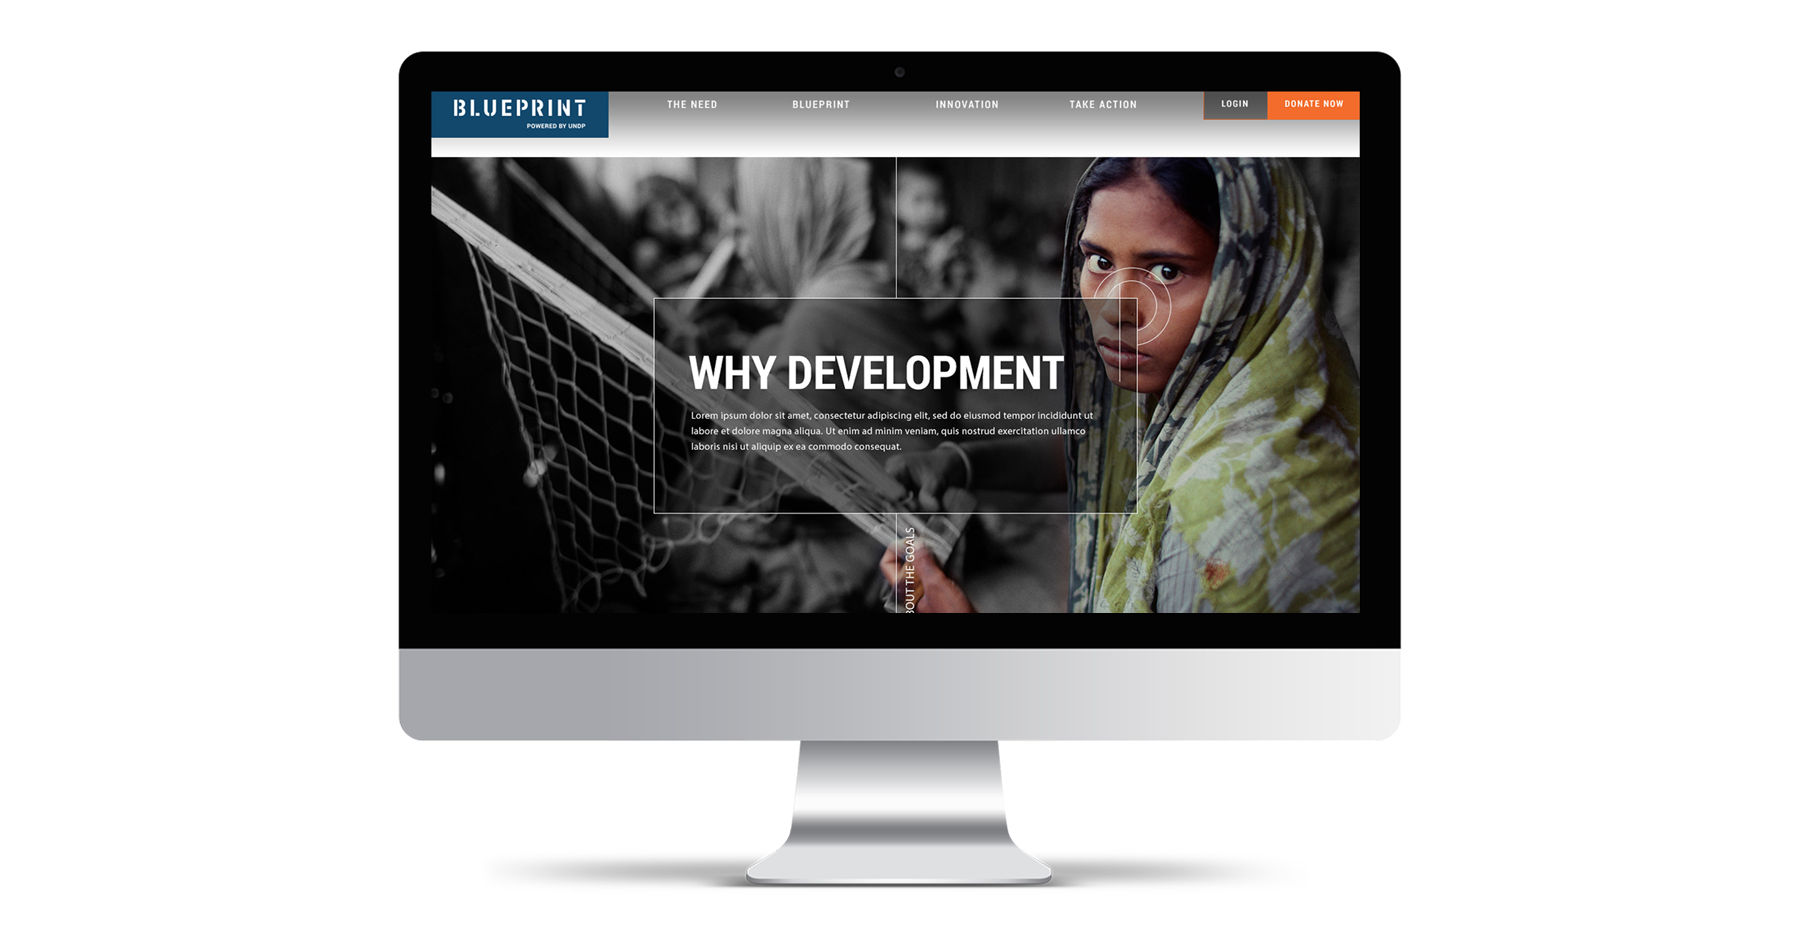 UNDP Blueprint iMac mockup of website design